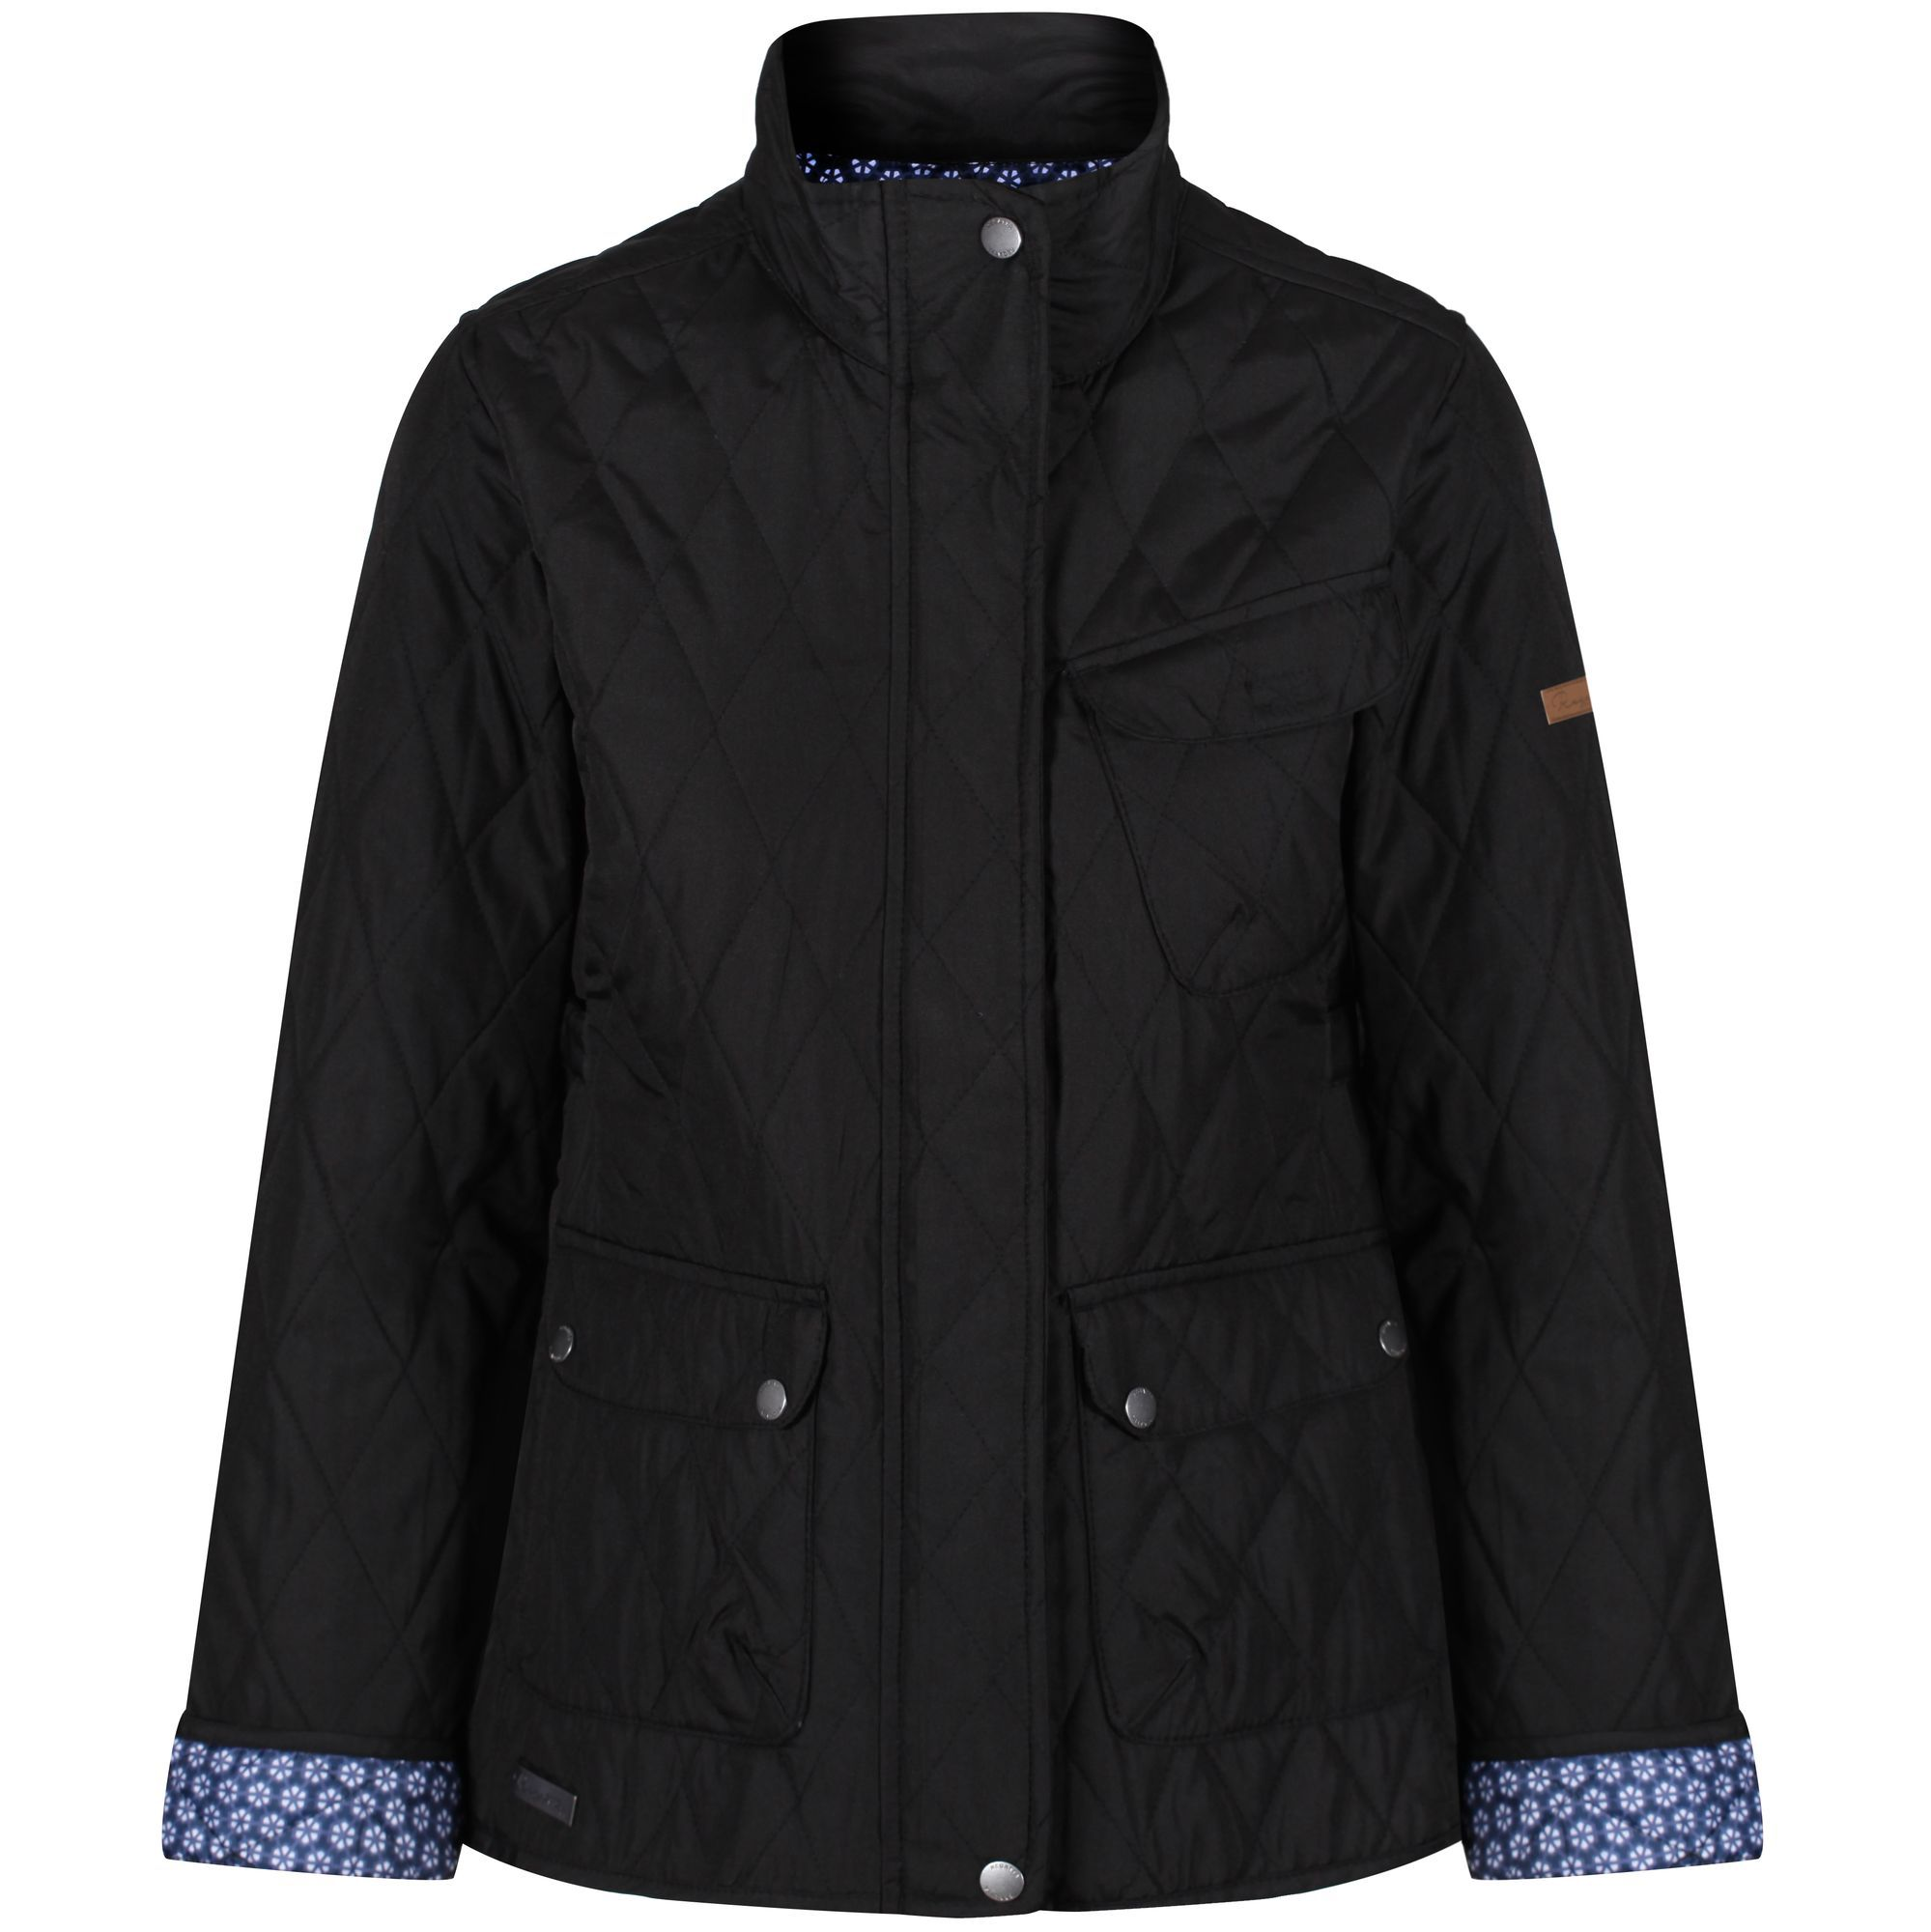 Regatta Camryn Jacket, Black